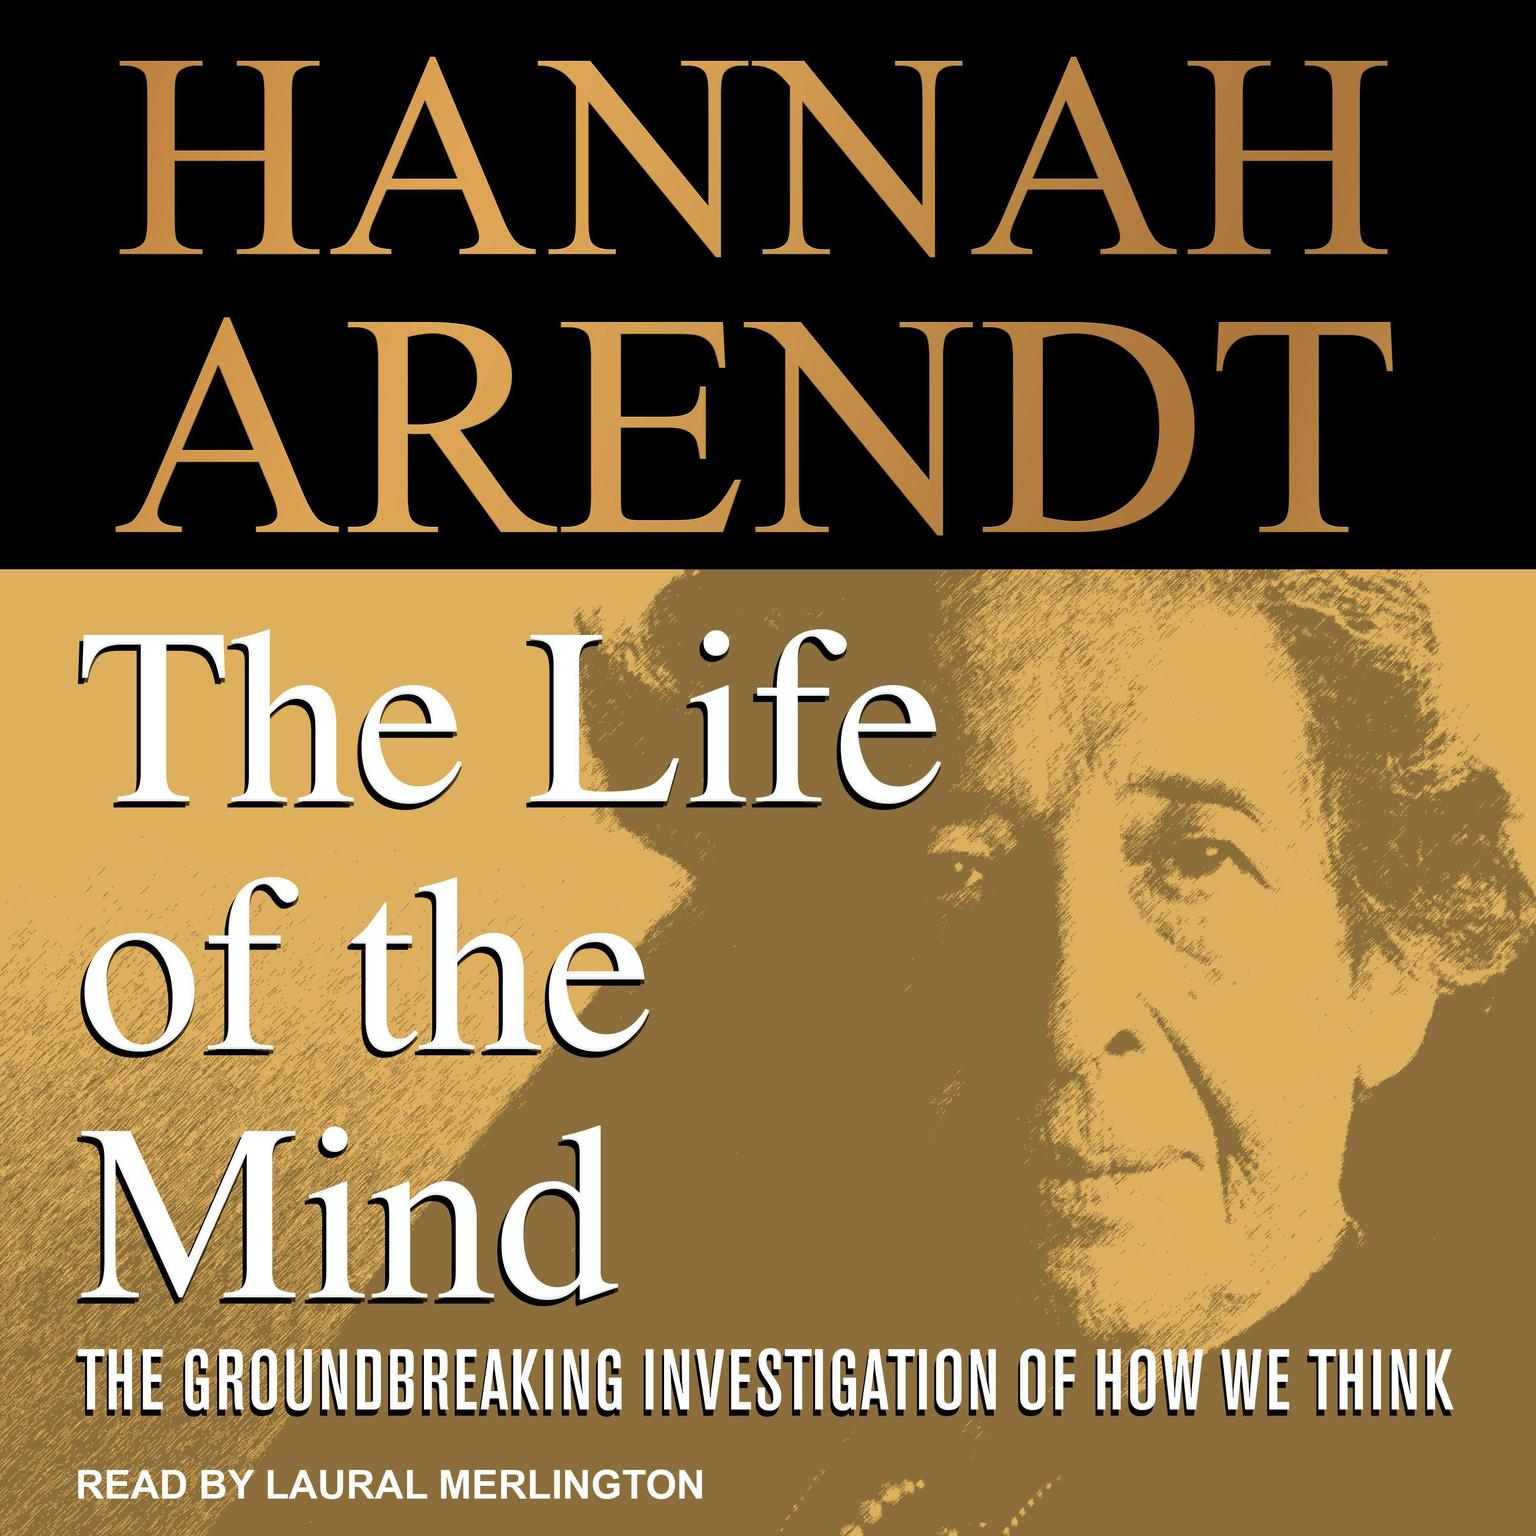 Image for PHIL / LIT 337 Life of the Mind: Hannah Arendt - Thomas Bartscherer